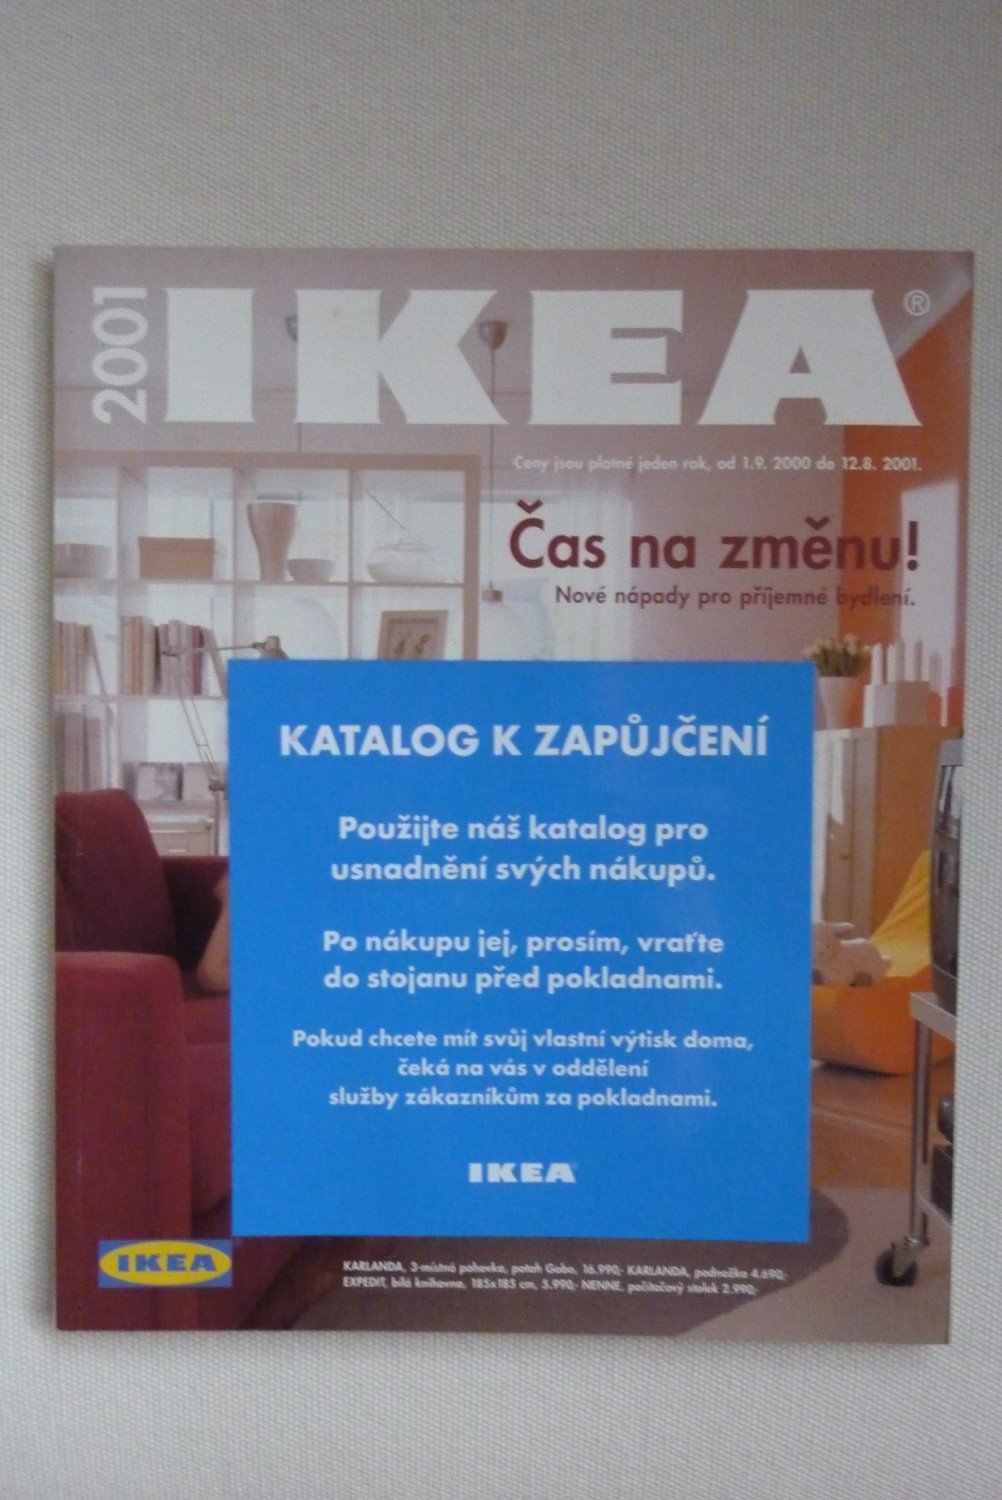 ikea katalog 2001 aus prag tschechien leihkatalog katalog buch gebraucht kaufen. Black Bedroom Furniture Sets. Home Design Ideas